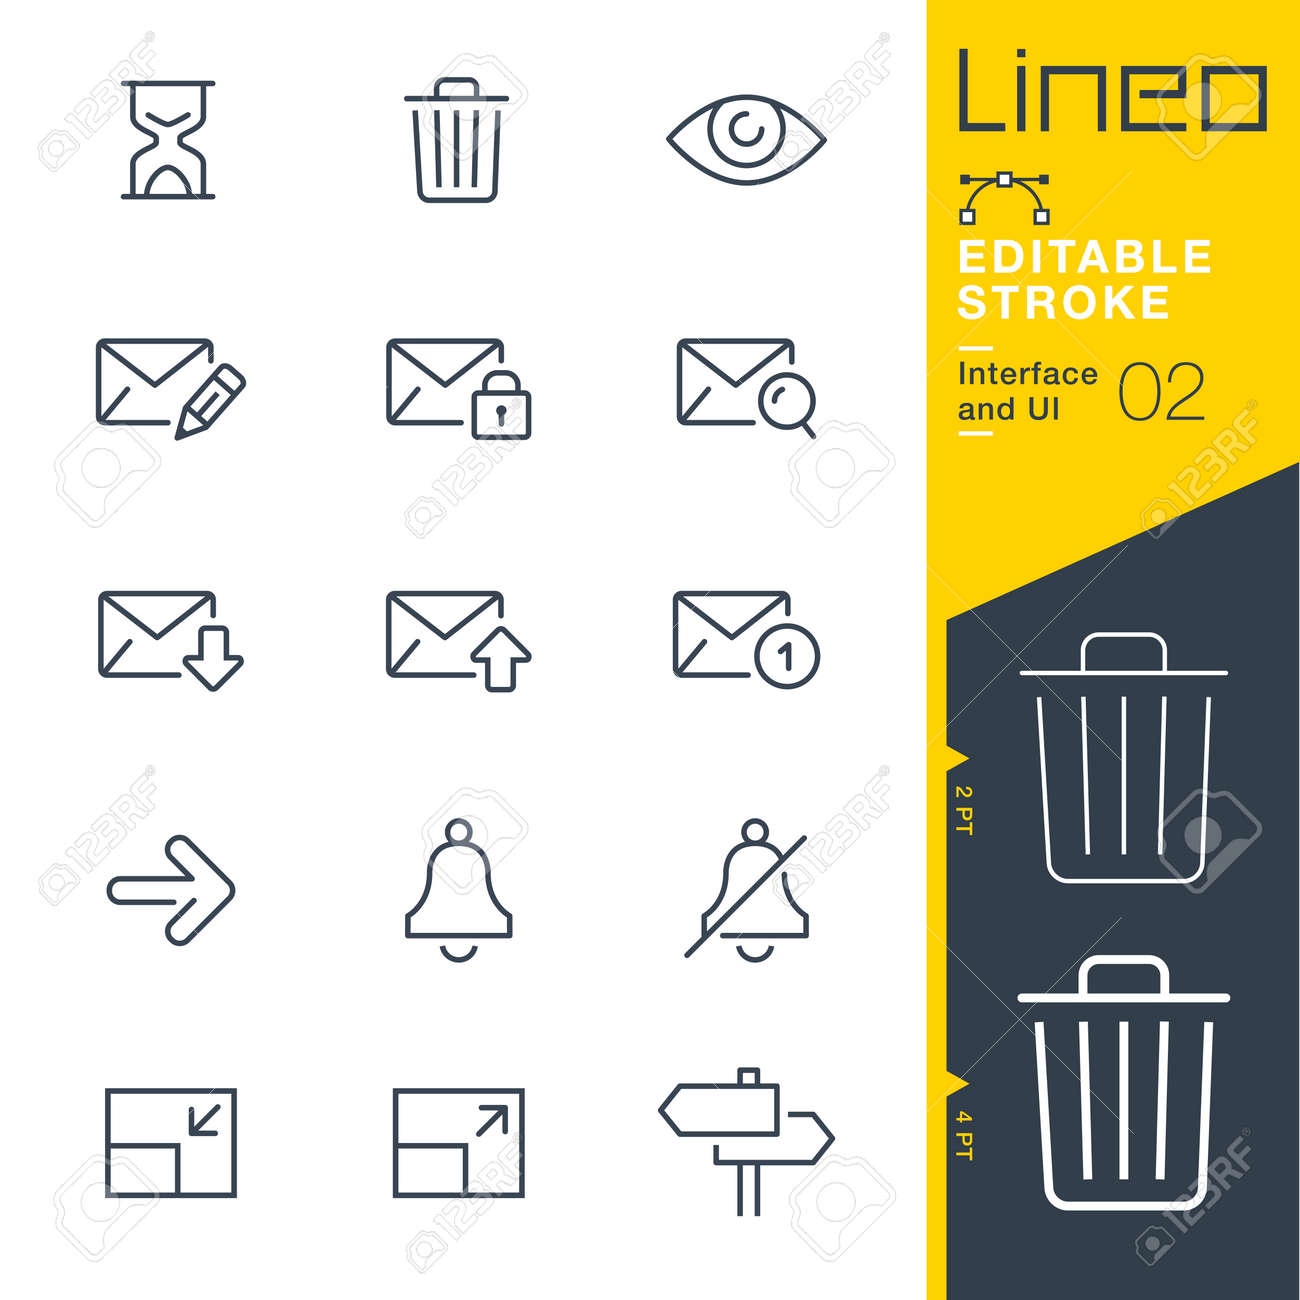 Lineo Editable Stroke - Interface and UI line icon Vector Icons - Adjust stroke weight - Change to any color - 86959602